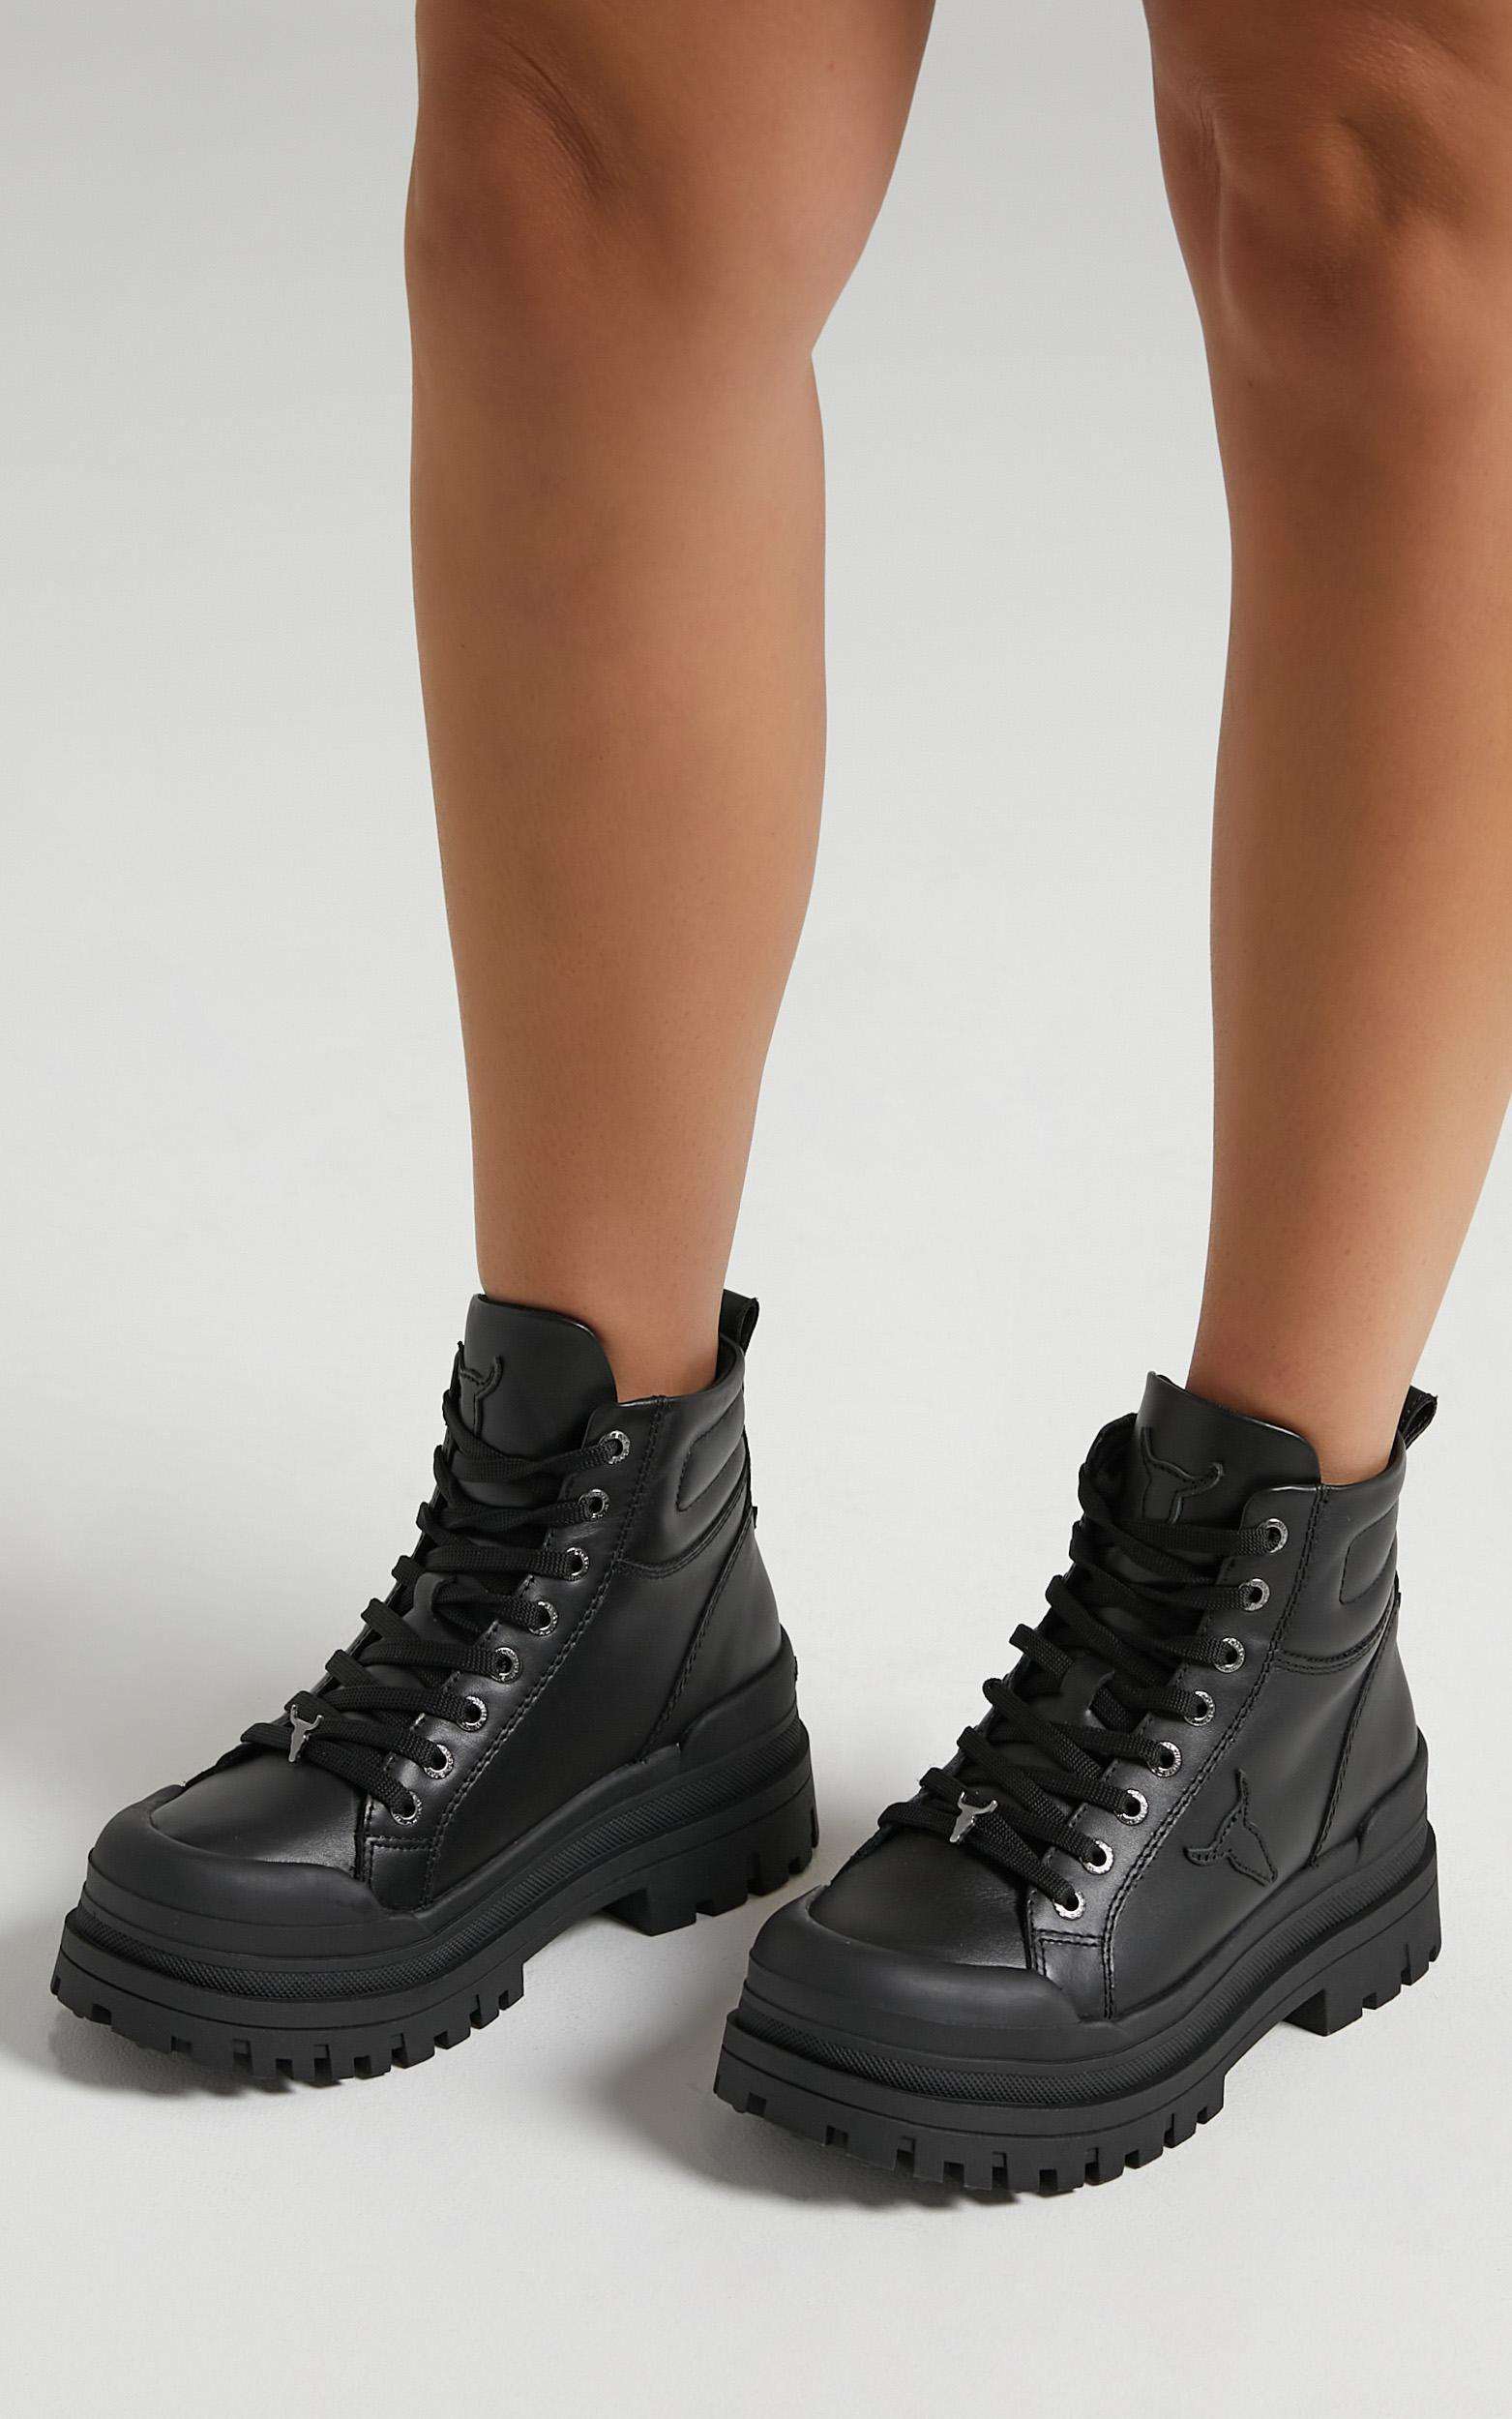 Windsor Smith - Disaster Boots in Black Leather - 6, Black, hi-res image number null